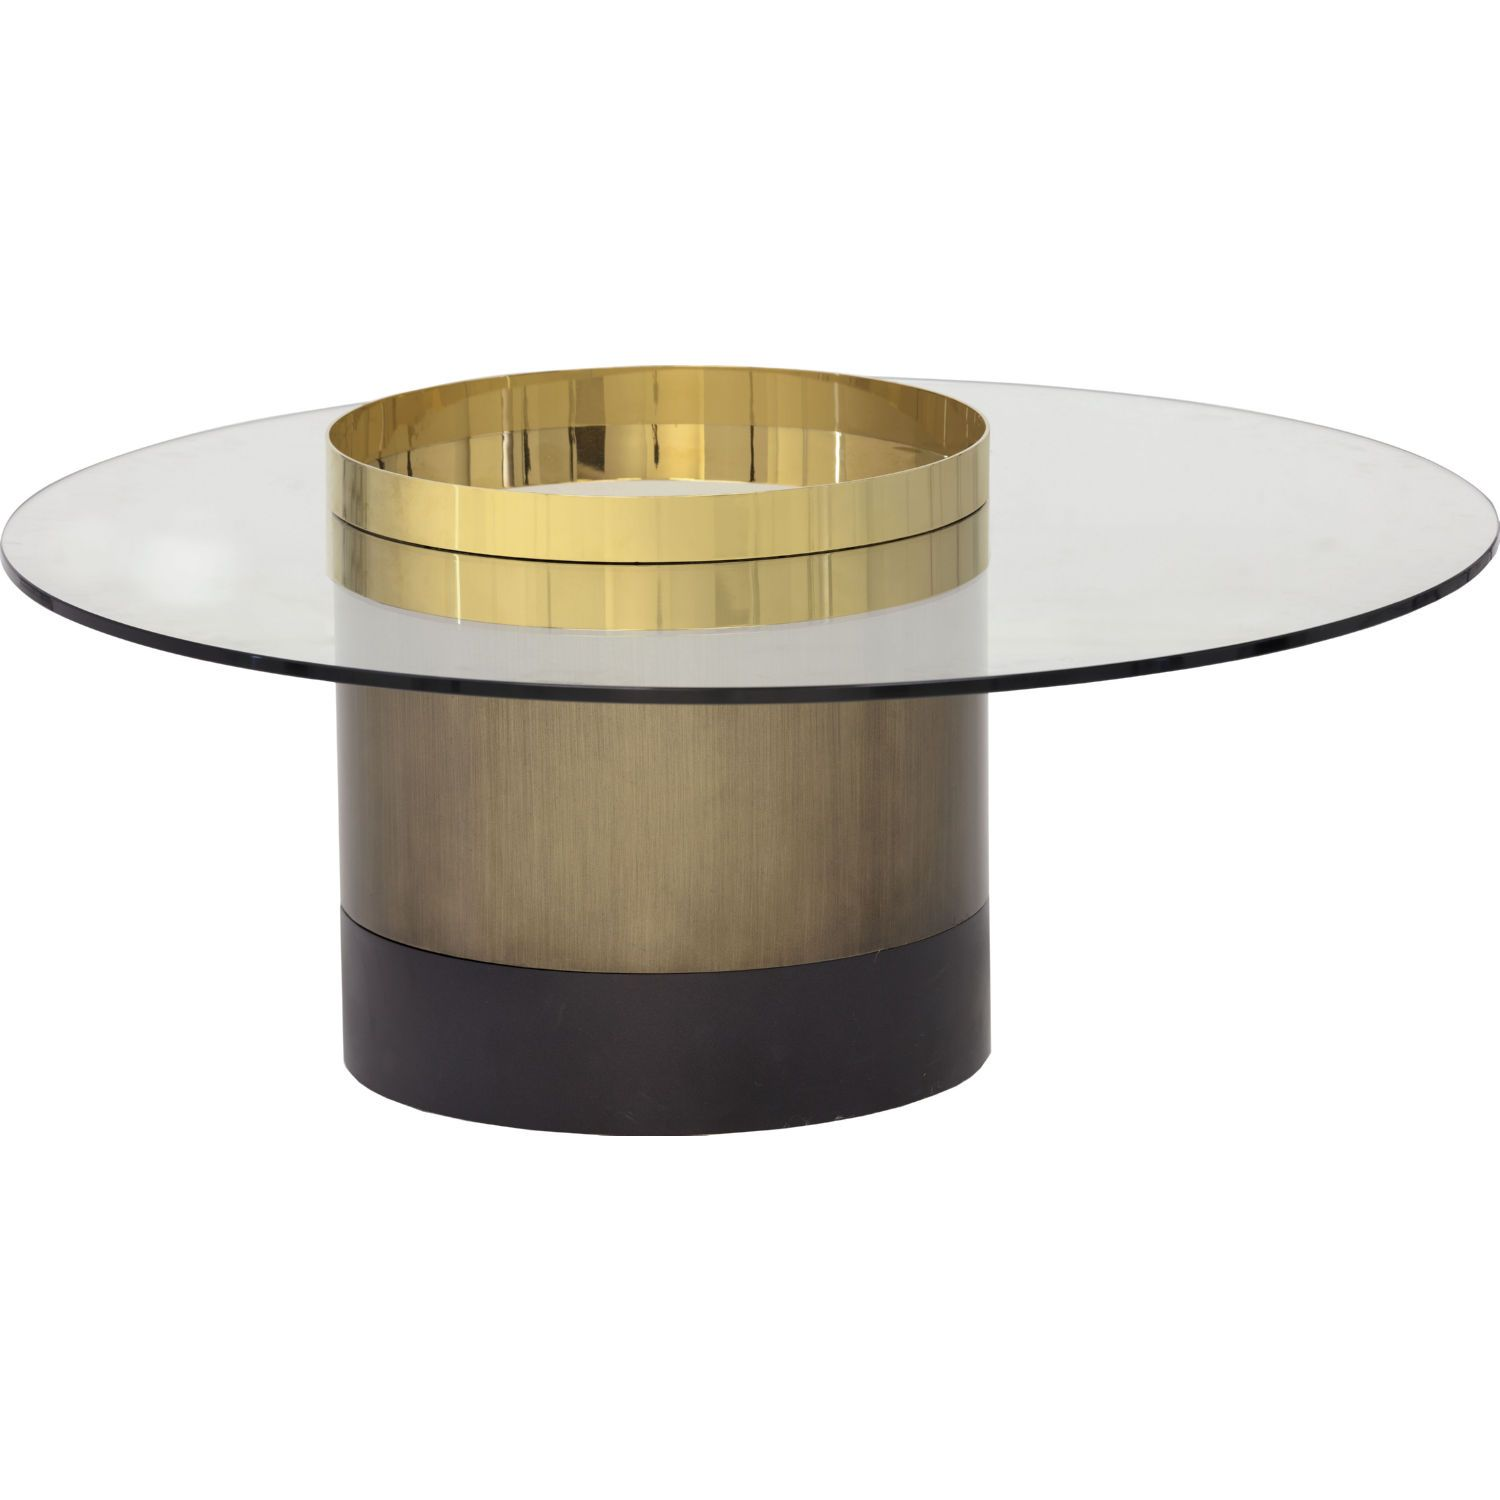 Sunpan 103032 Haru Coffee Table Brown Gold Stainless Steel Tempered Glass In 2021 Coffee Table Table Elegant Furniture [ 1500 x 1500 Pixel ]